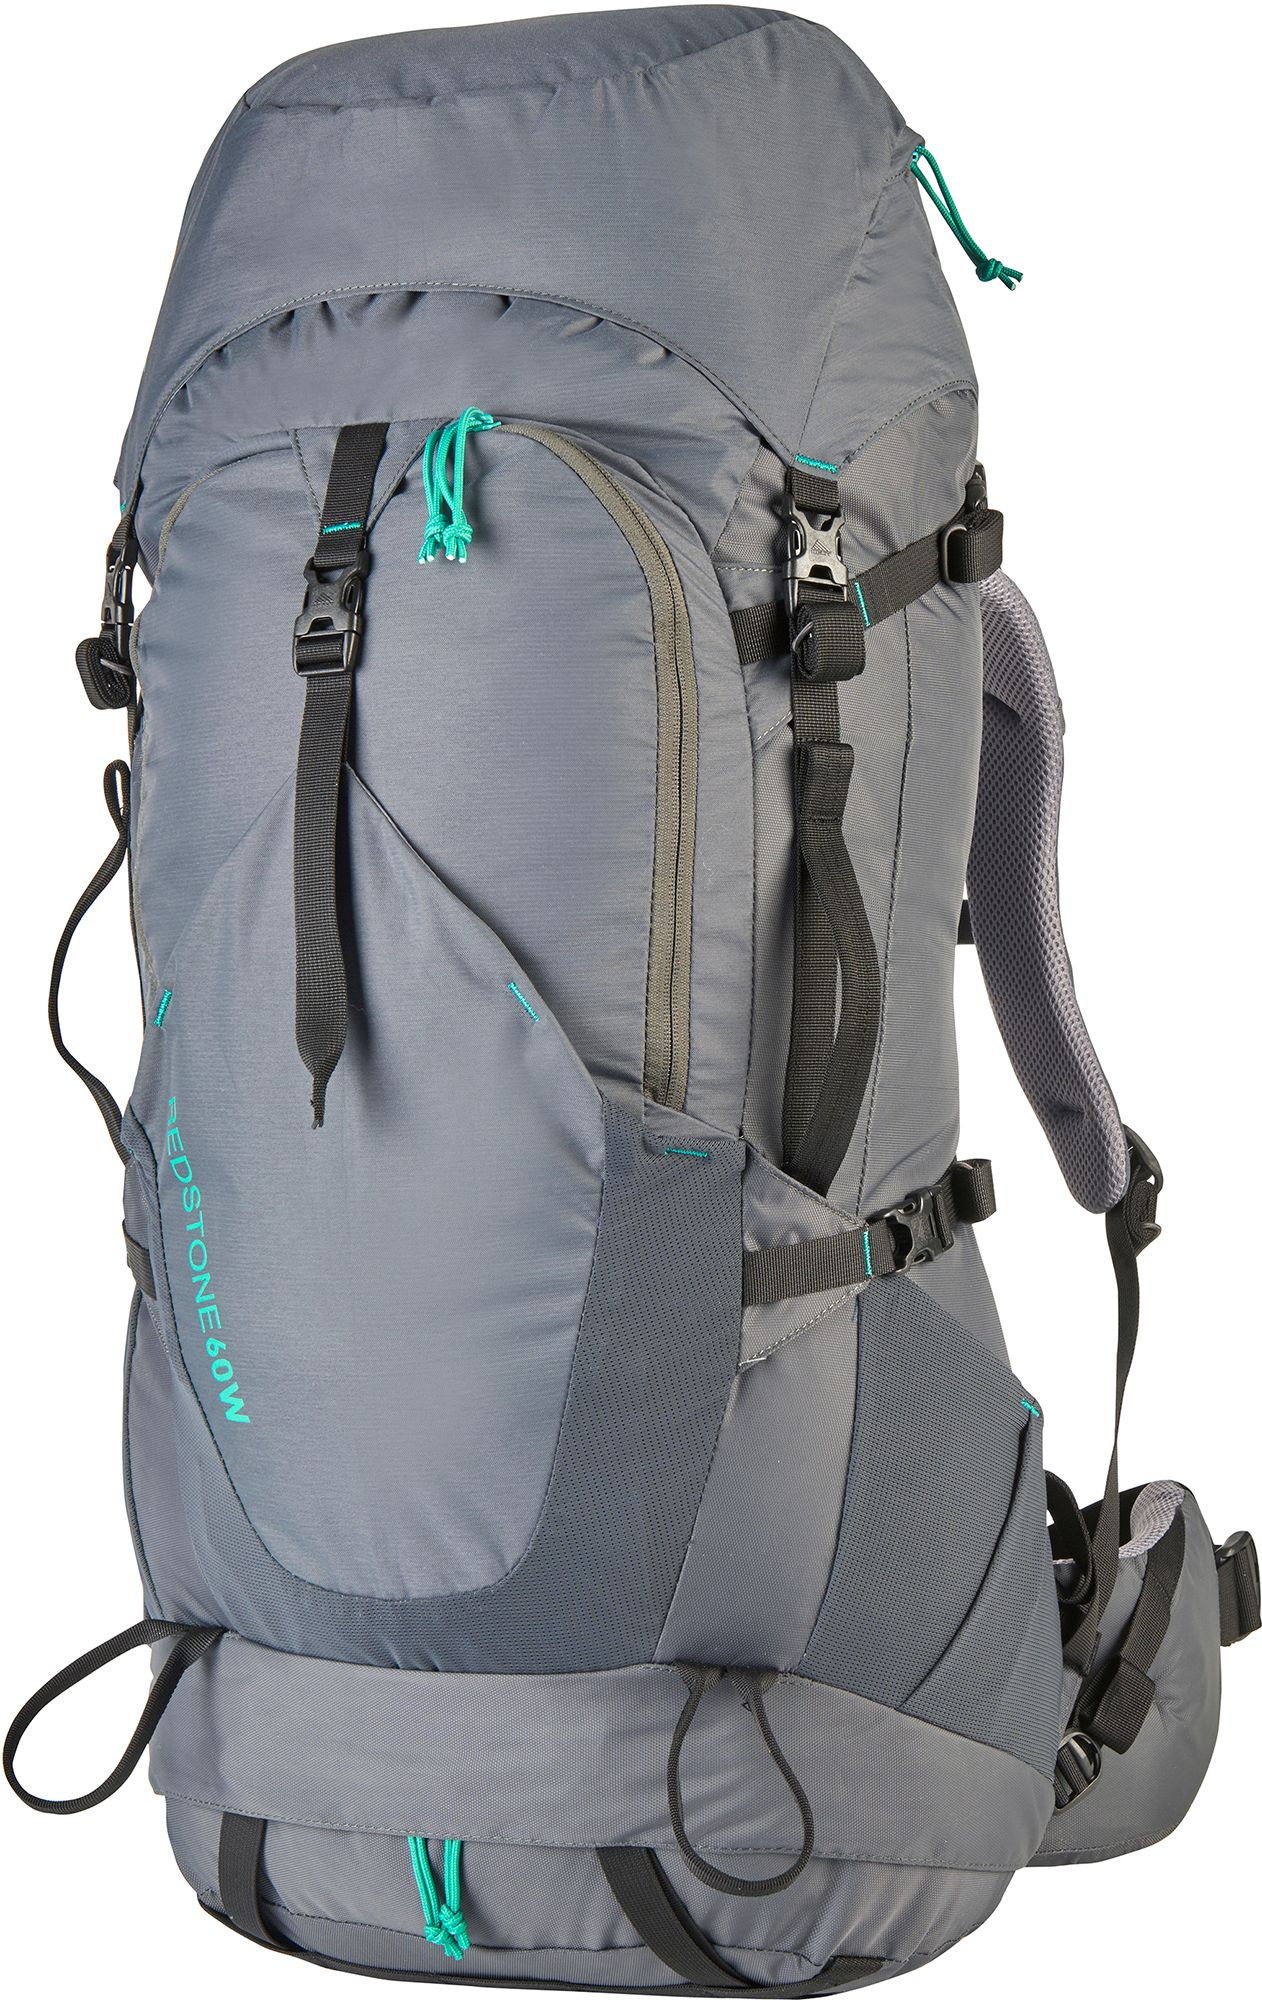 Clearance Hiking Backpacks | DICK'S Sporting Goods